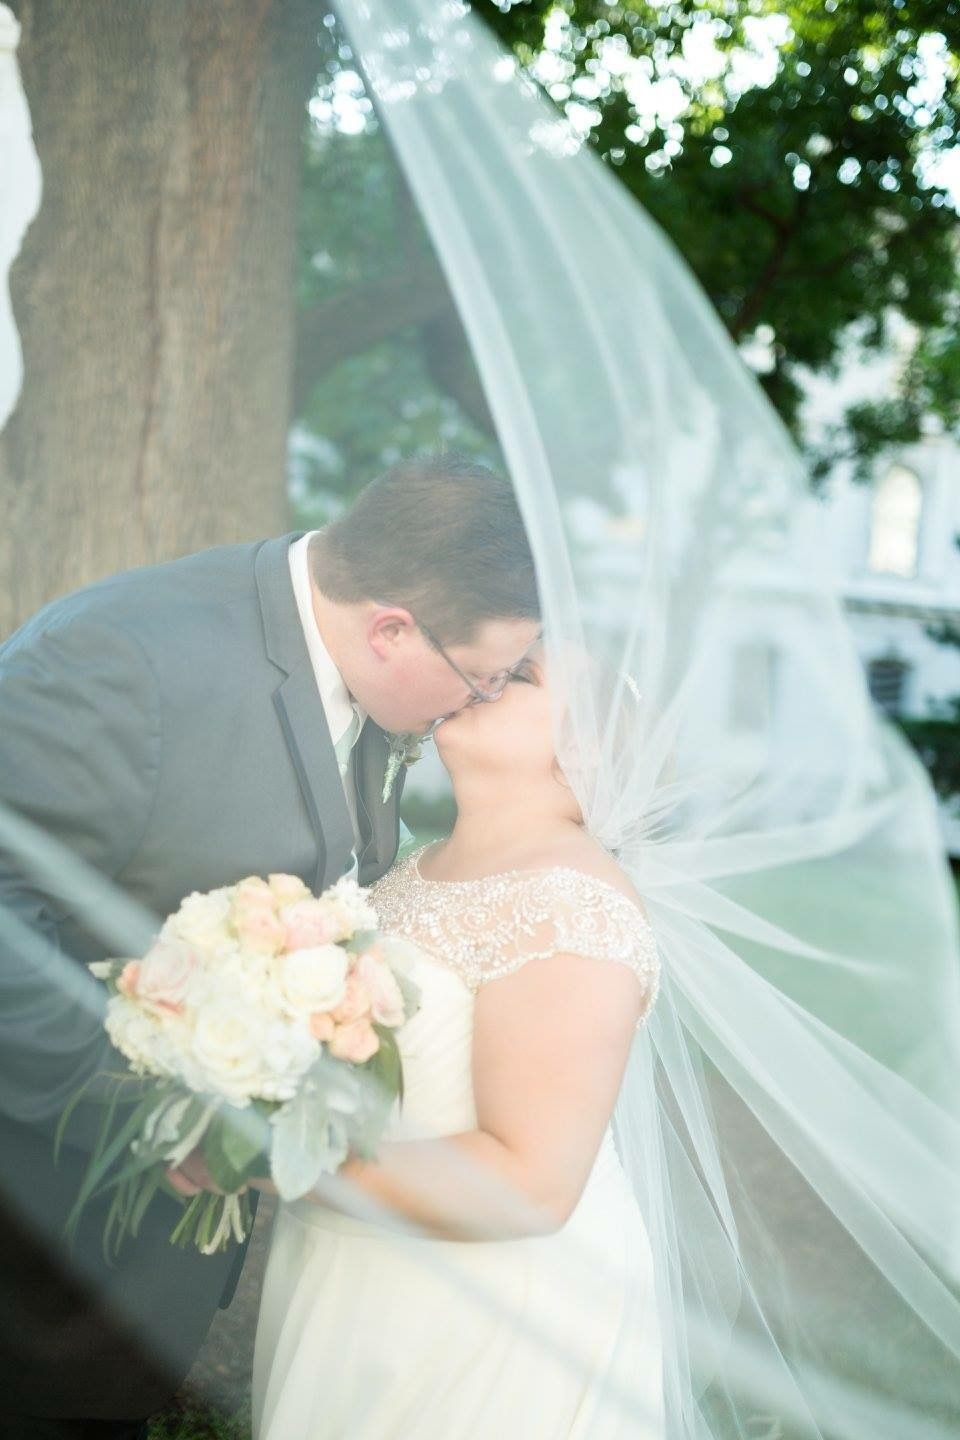 Picture through the flying veil | My Wedding (Photos from my actual ...